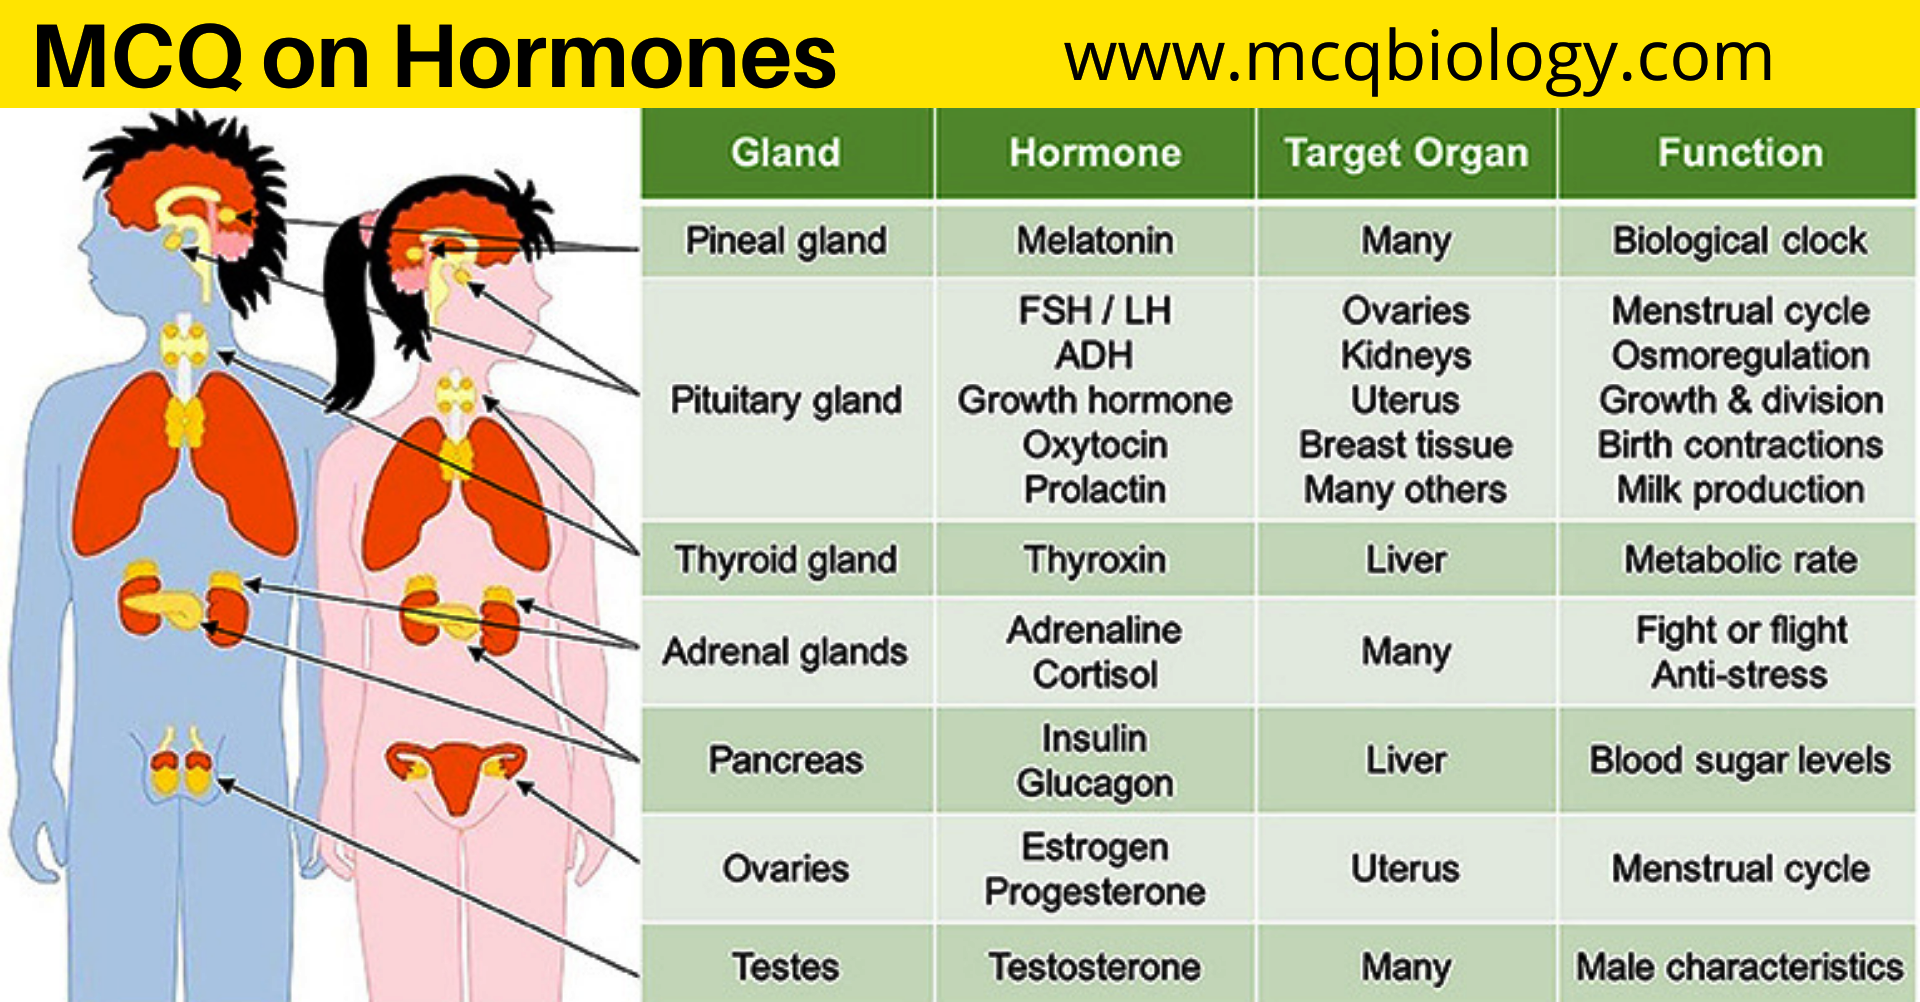 MCQ on Hormones -The Endocrine system